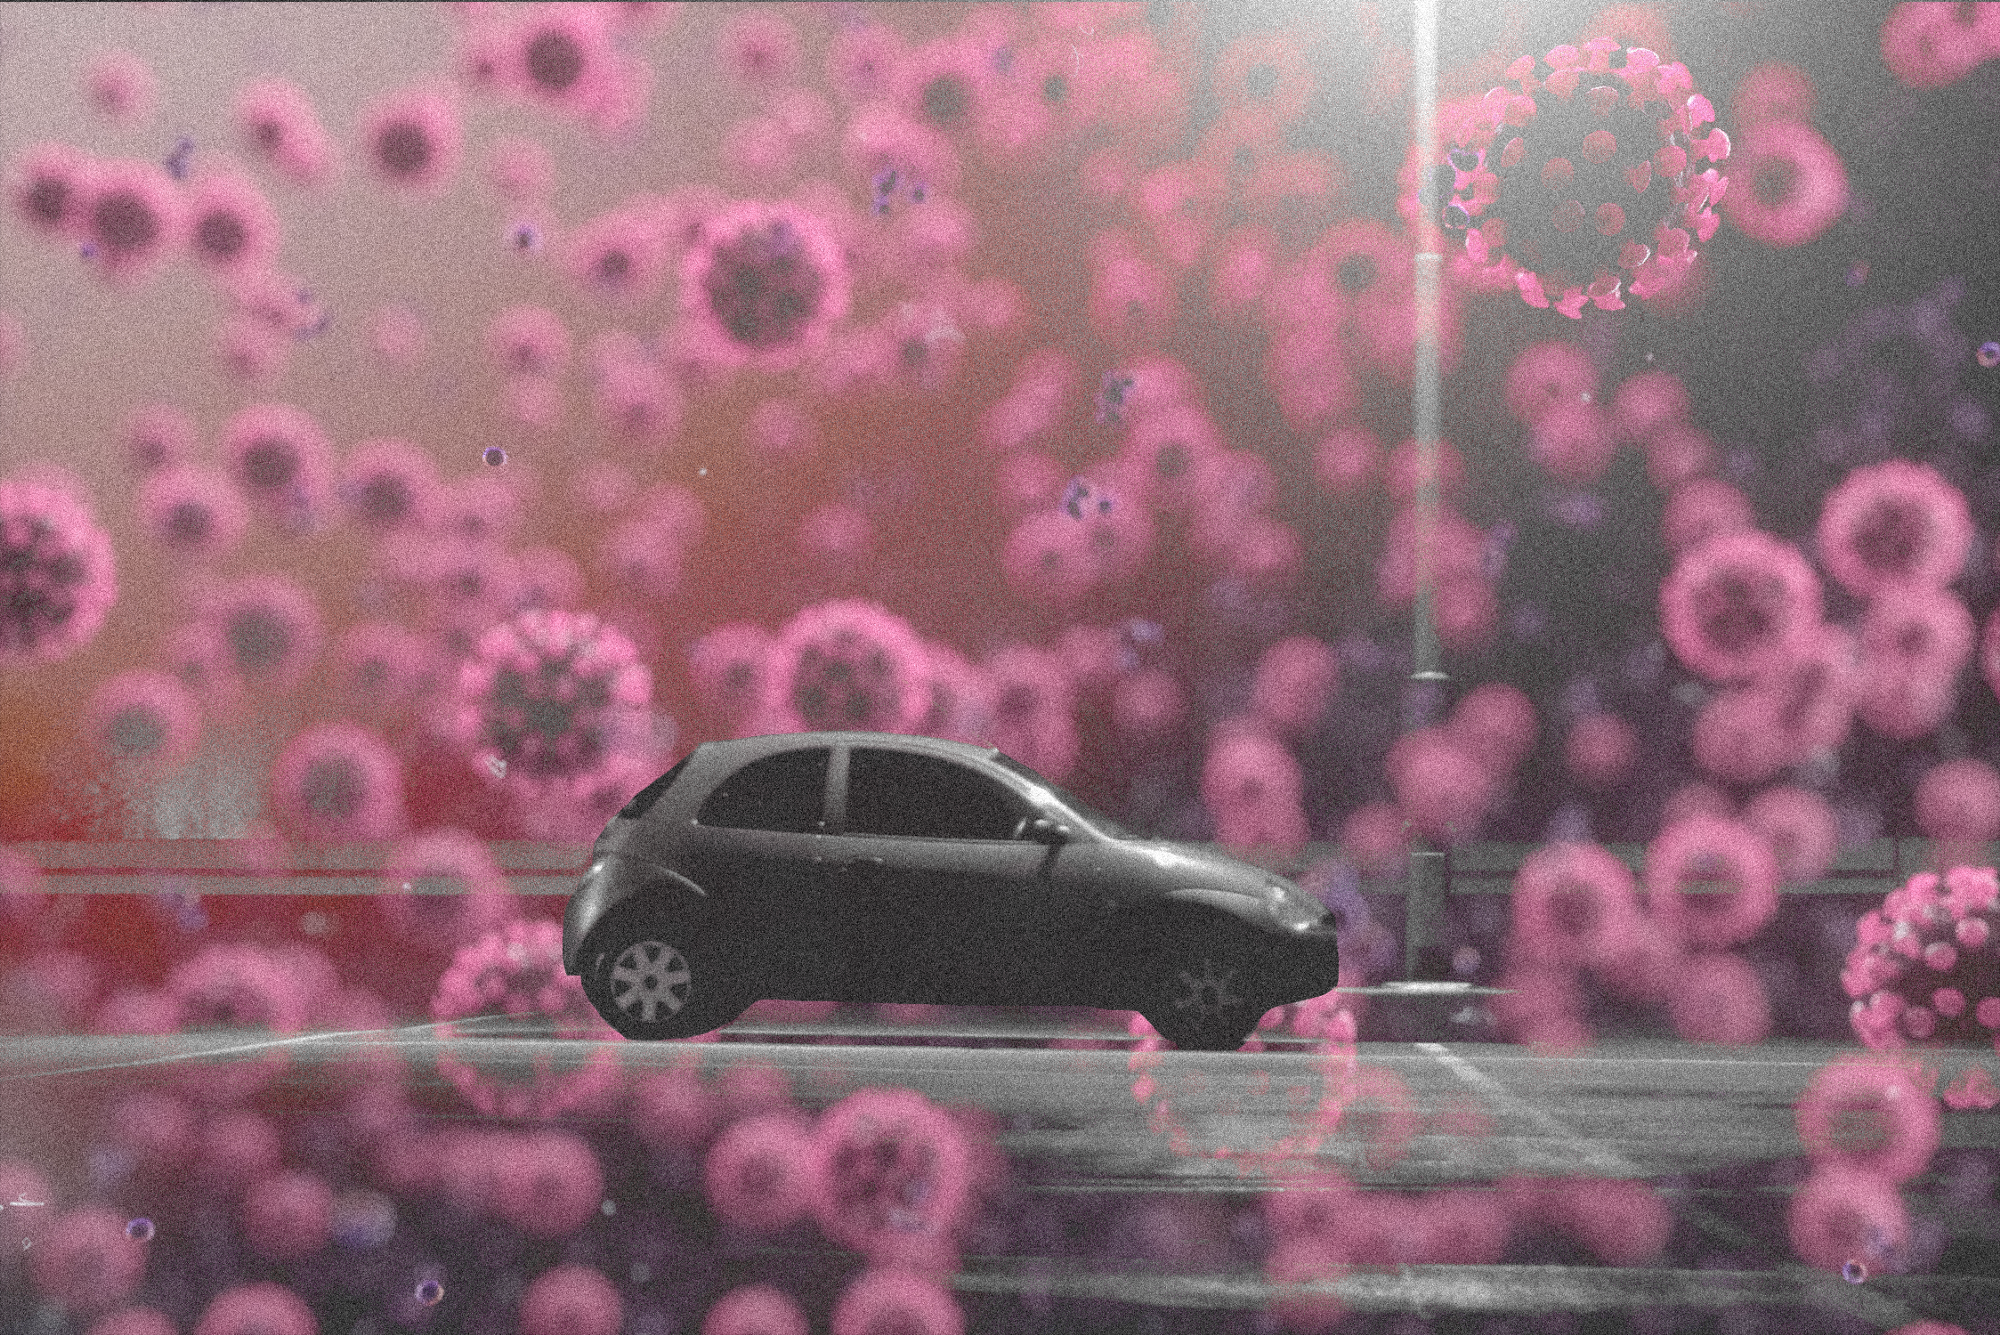 A photo illustration of a car parked in a parking lot, with coronaviruses swarming in the background.